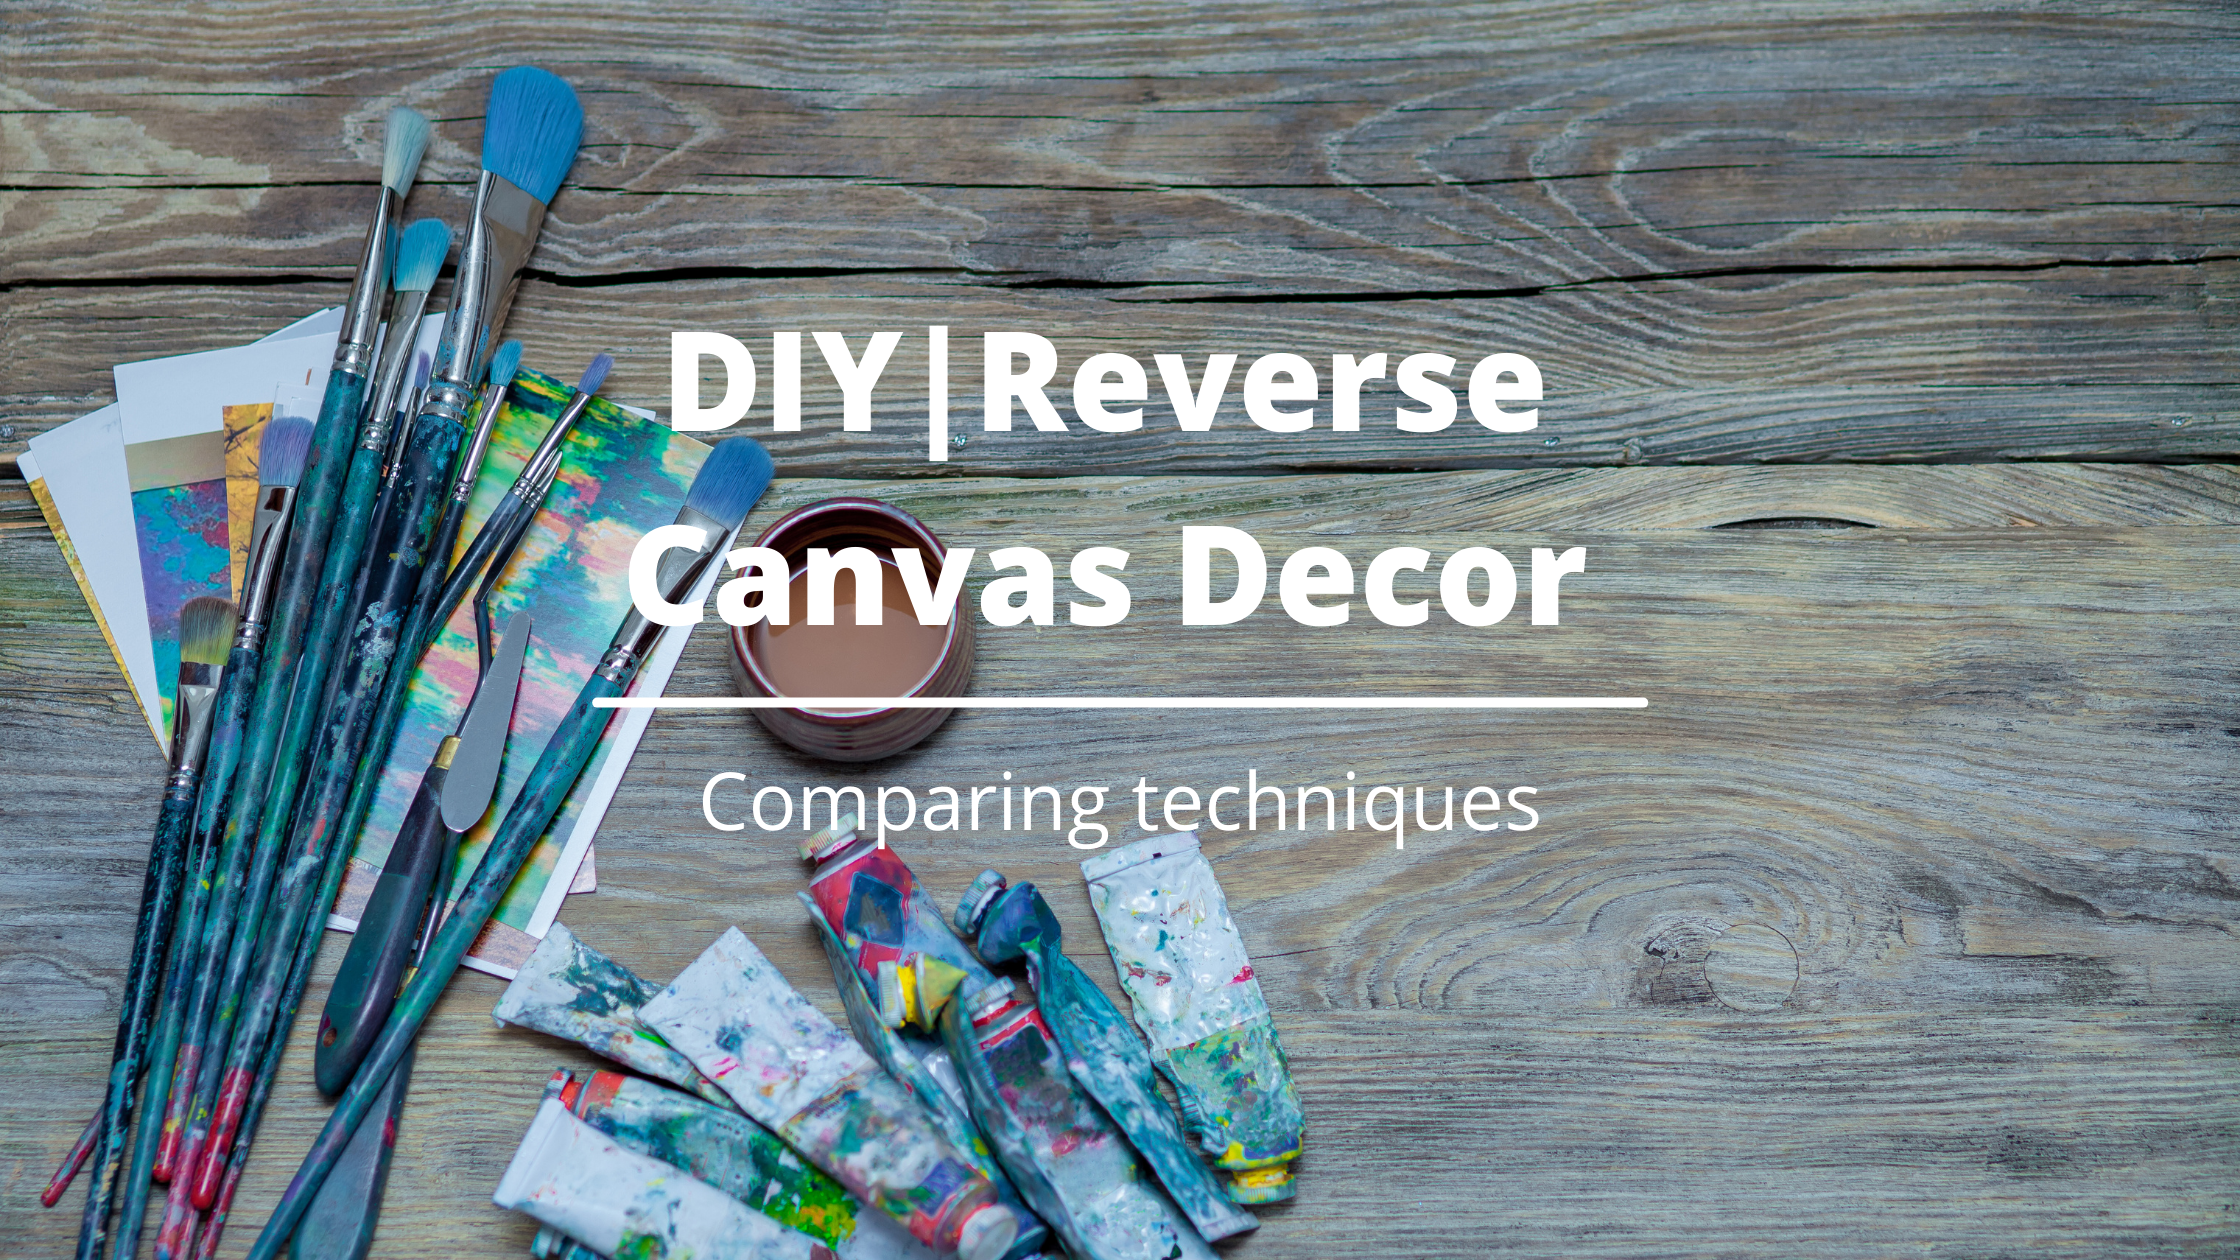 DIY_Reverse Canvas Decor